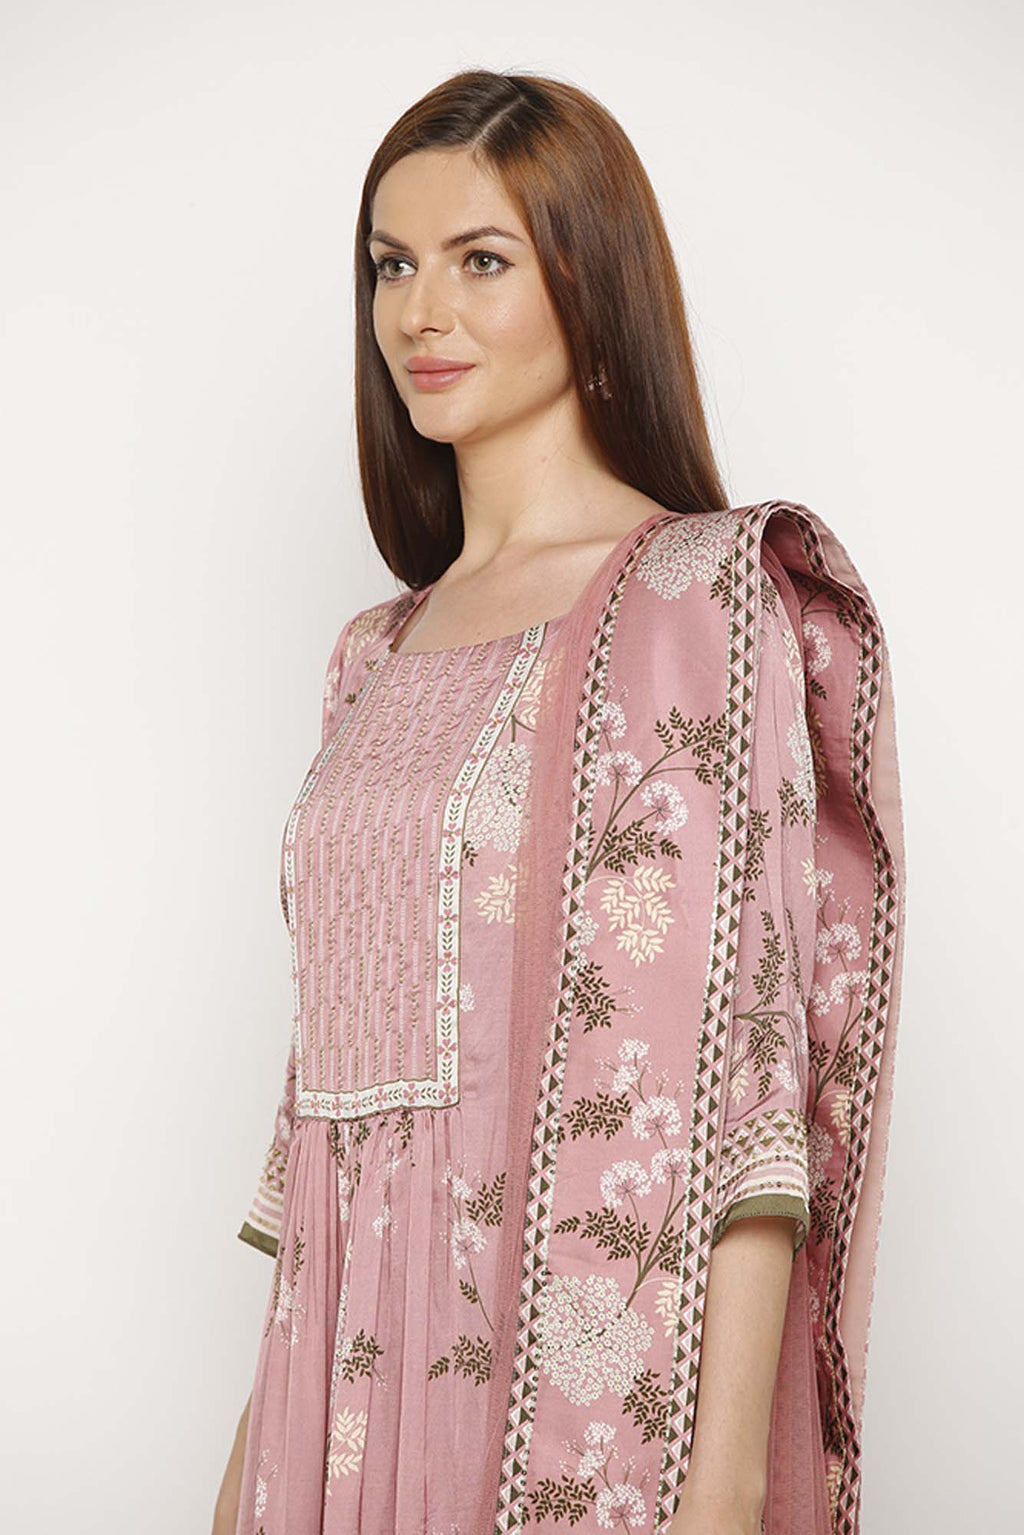 Printed Pink Dress with Kurta, Pant and Dupatta - Riviera Closet